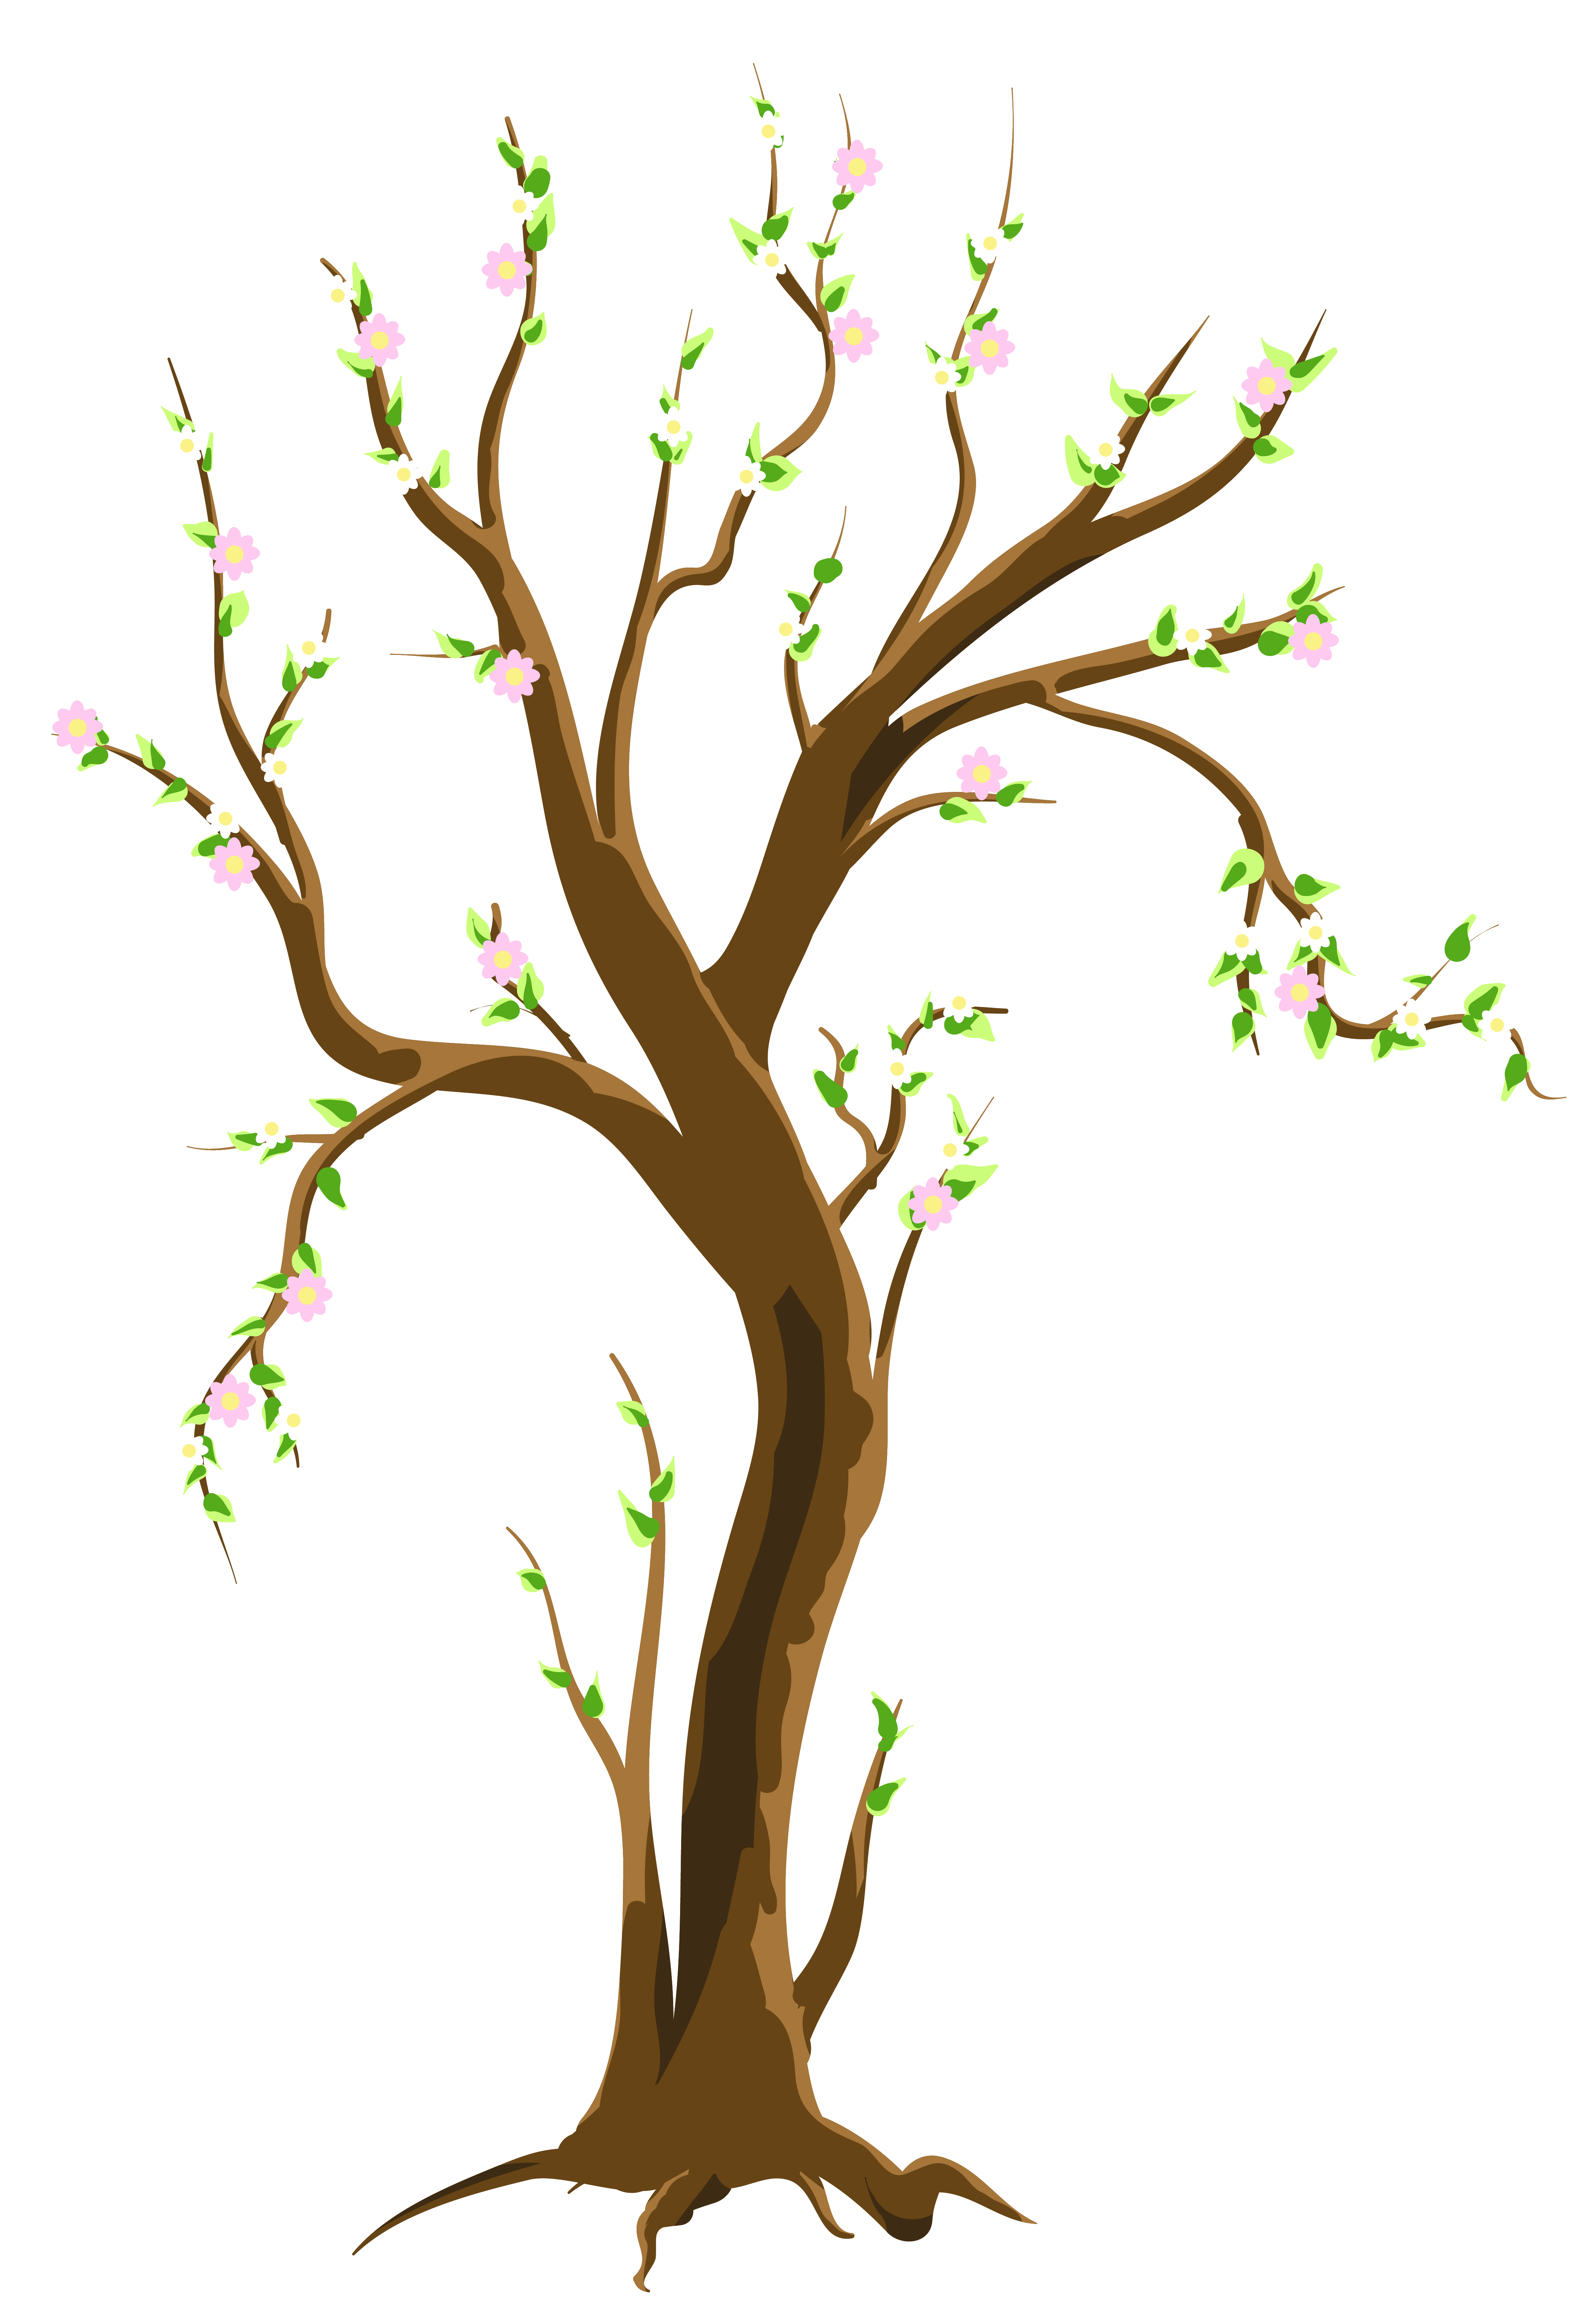 Aspen tree clipart vector transparent download Pin by Надежда Охотина on КЛИПАРТ | Pinterest vector transparent download